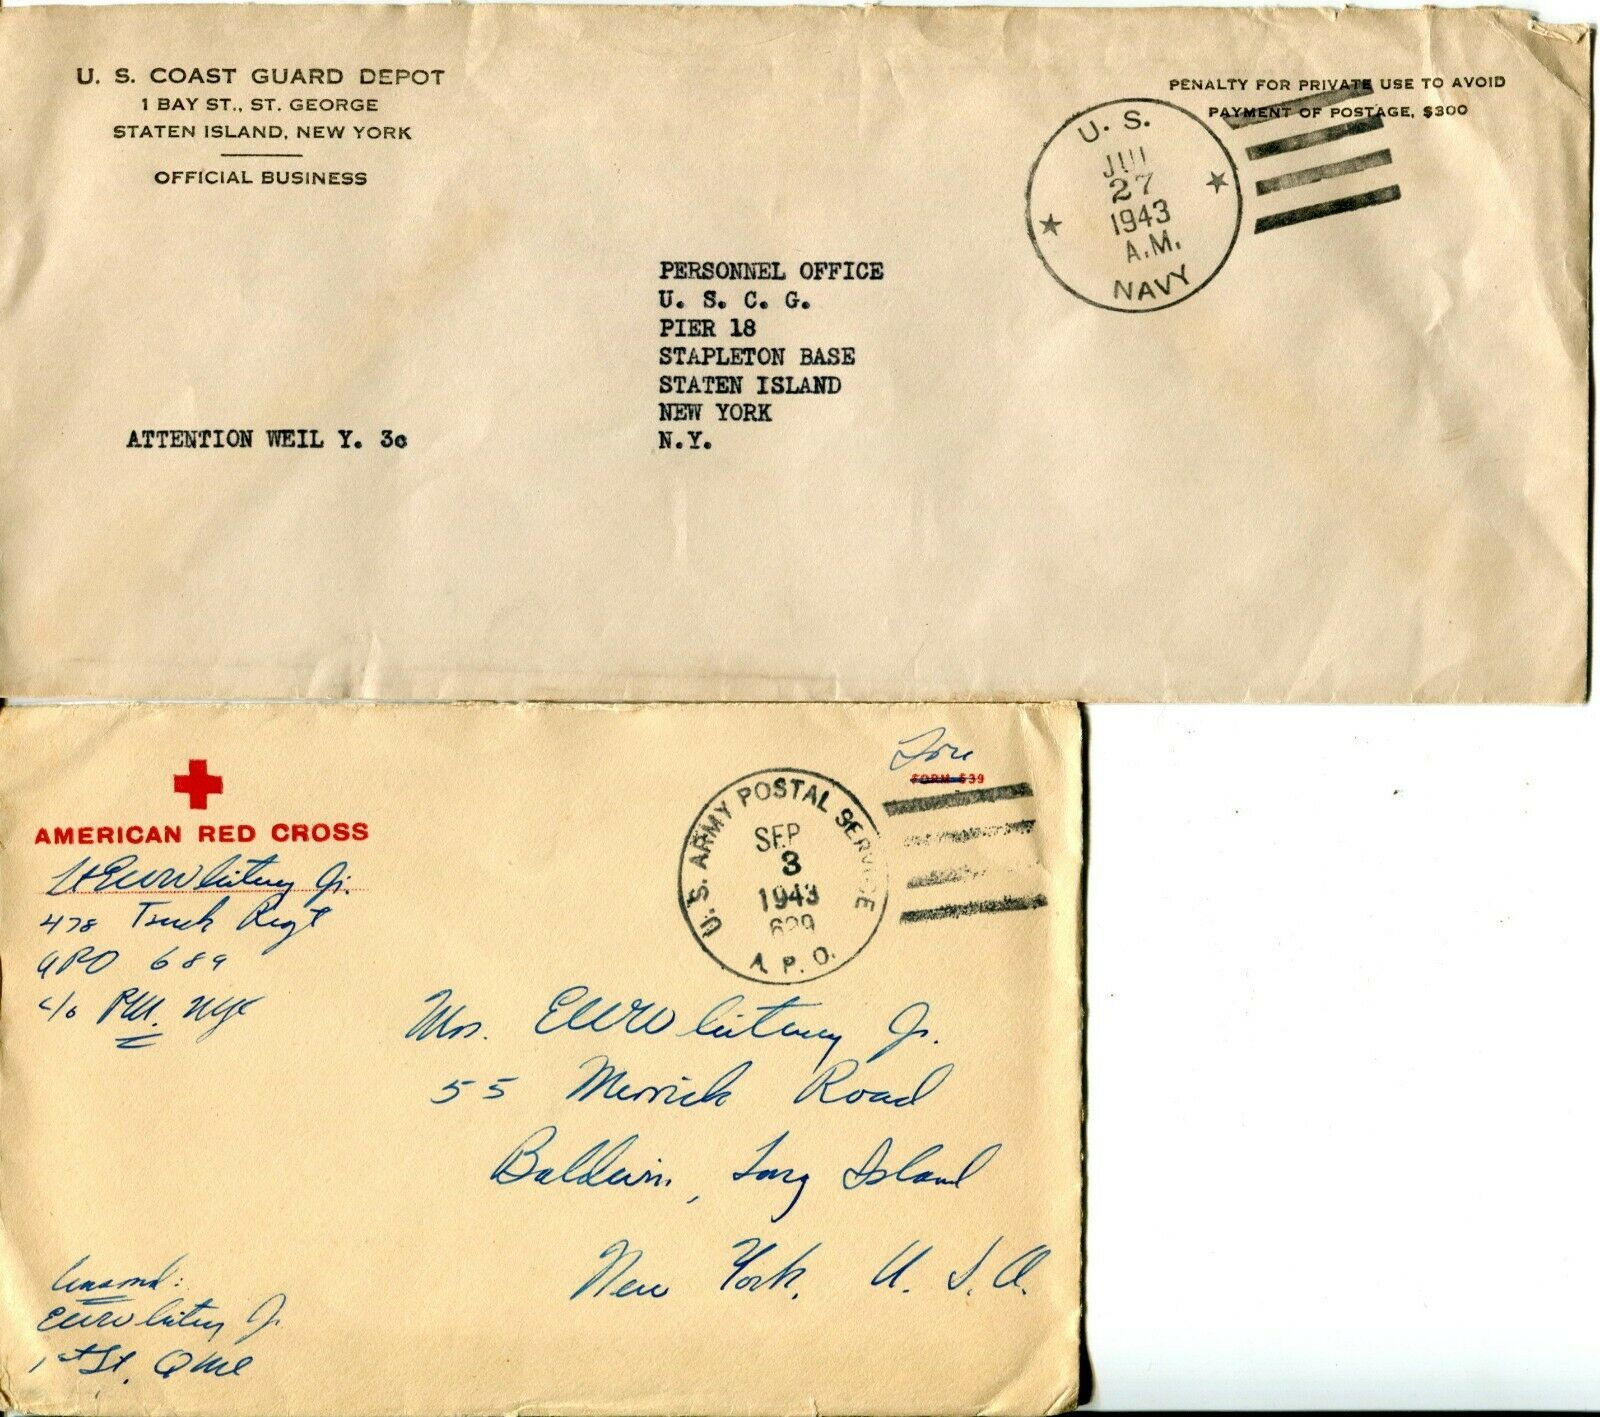 Marine US Army American Red Cross WWII Navy Military Cover Postage Collection image 4